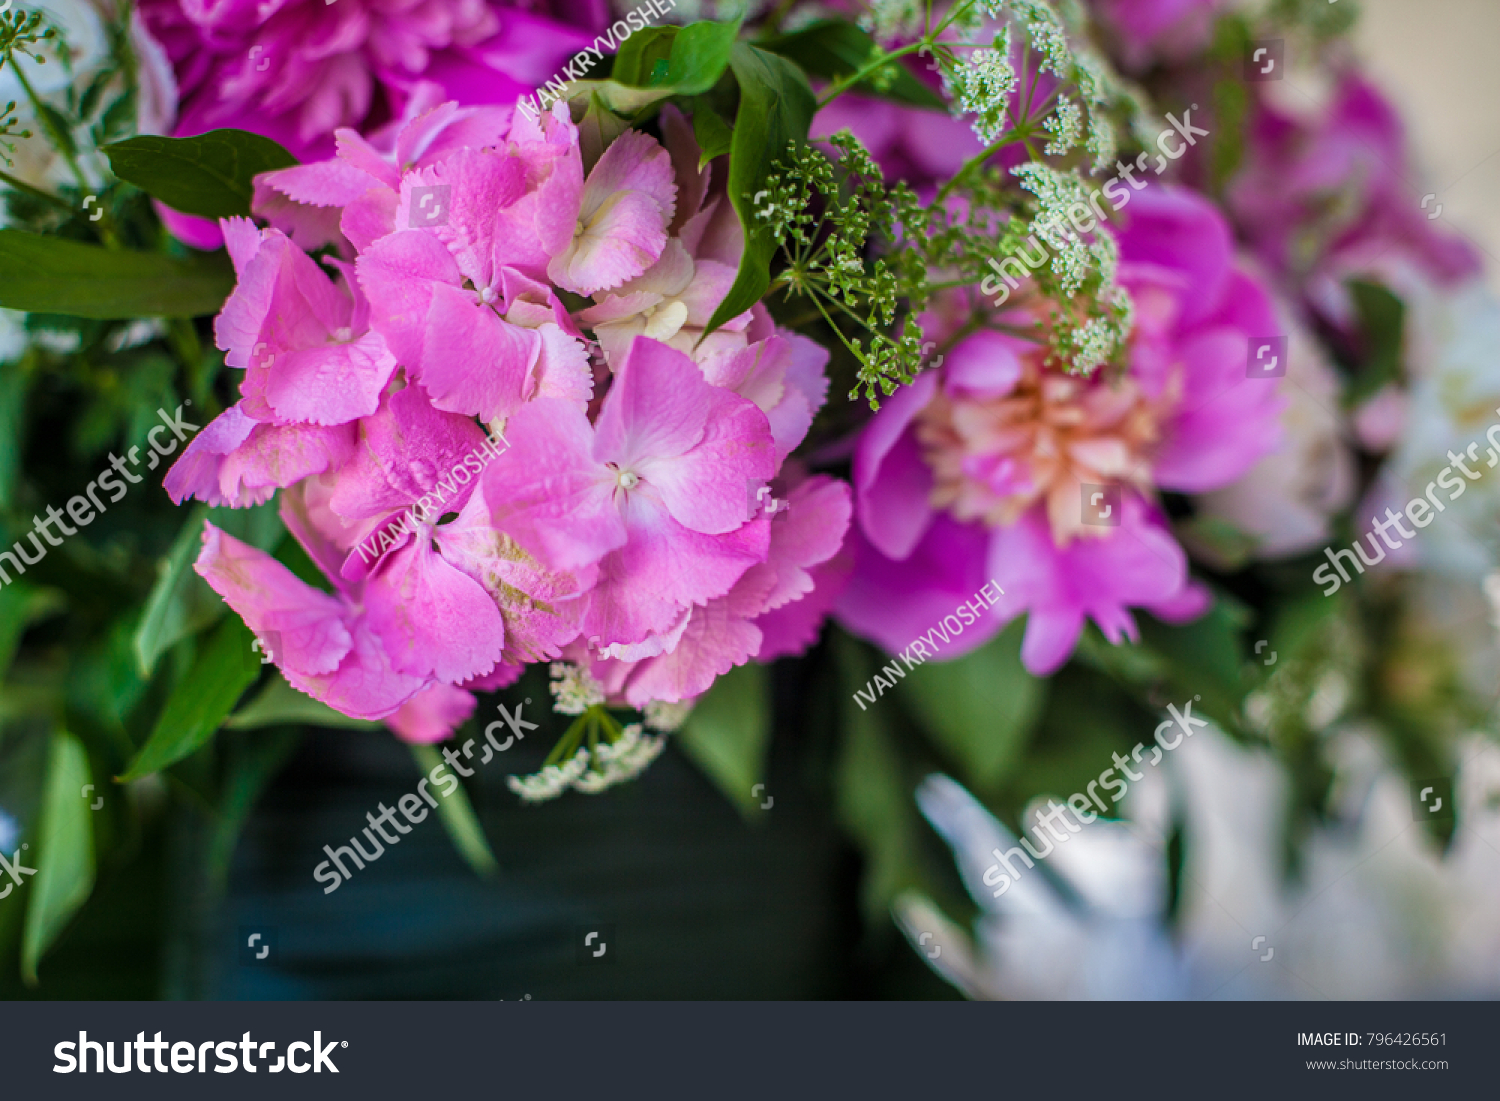 Elegant Flower Decoration On The Table In Restaurant For An Event